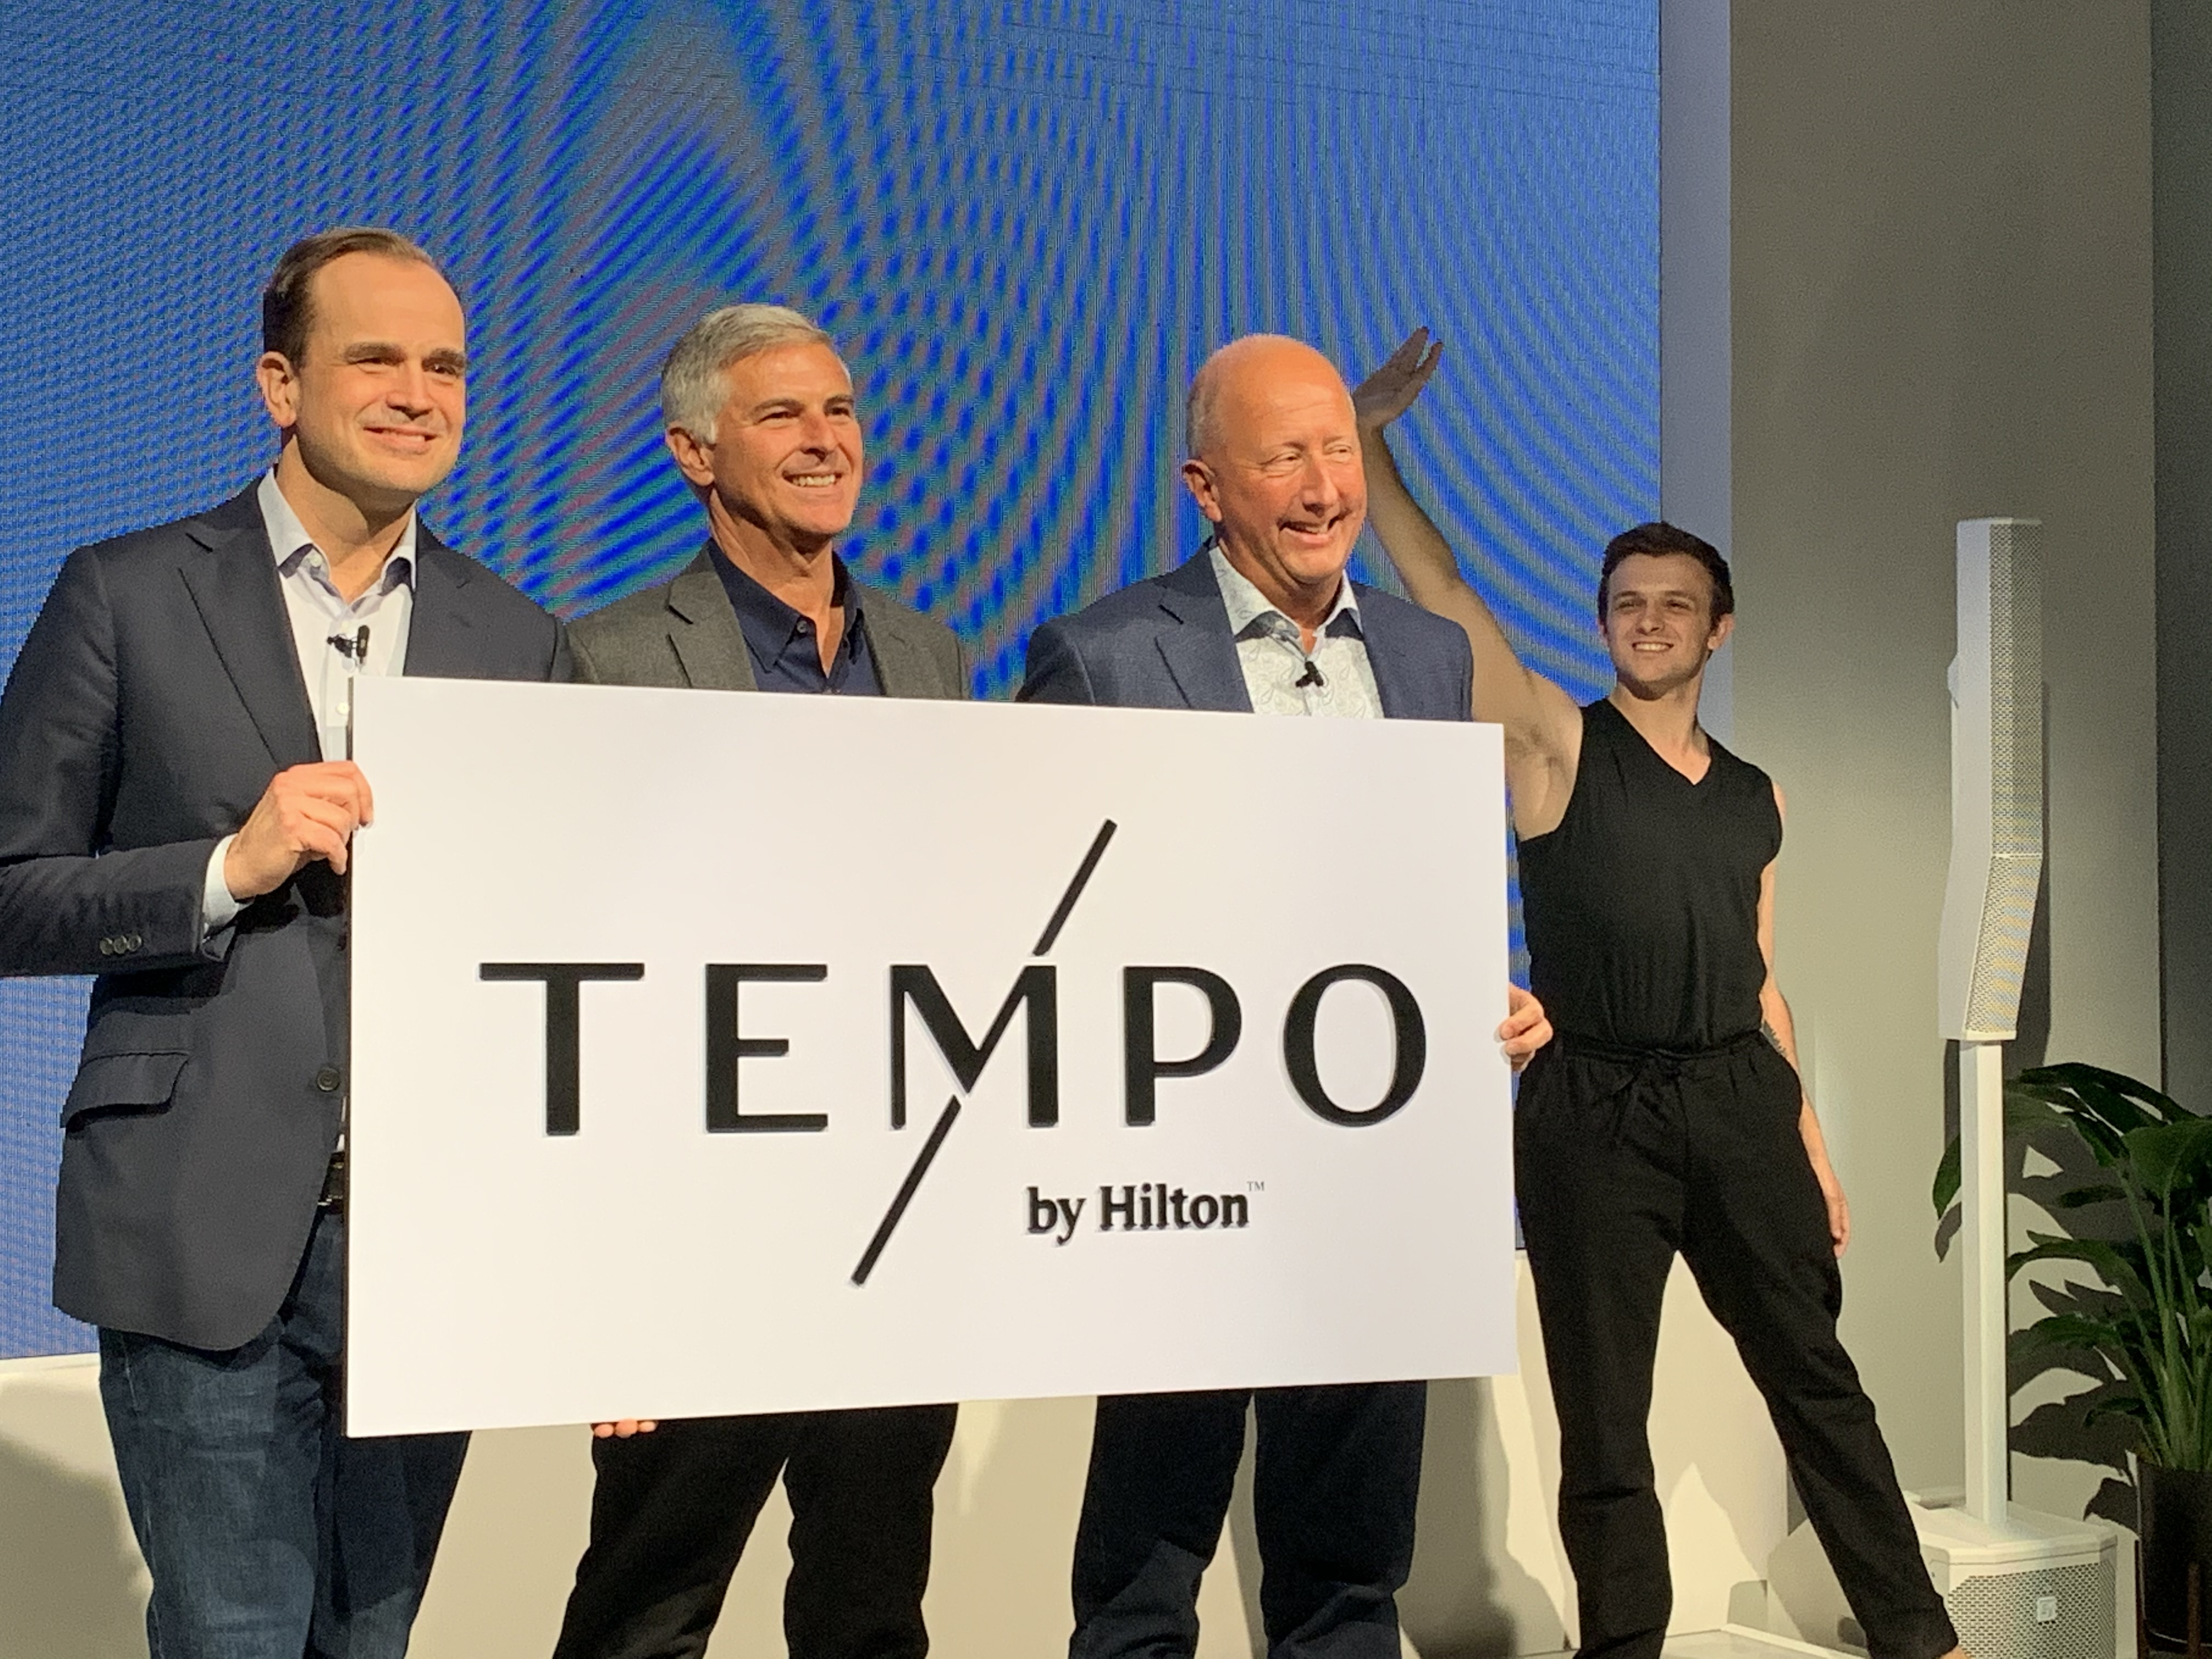 At the Jan. 16 brand launch, Hilton's Chief Customer Officer Jon Witter, President/CEO Chris Nassetta and Global Head/New Brand Development Phil Cordell show off Tempo by Hilton logo. Photo credit: Hotel Management